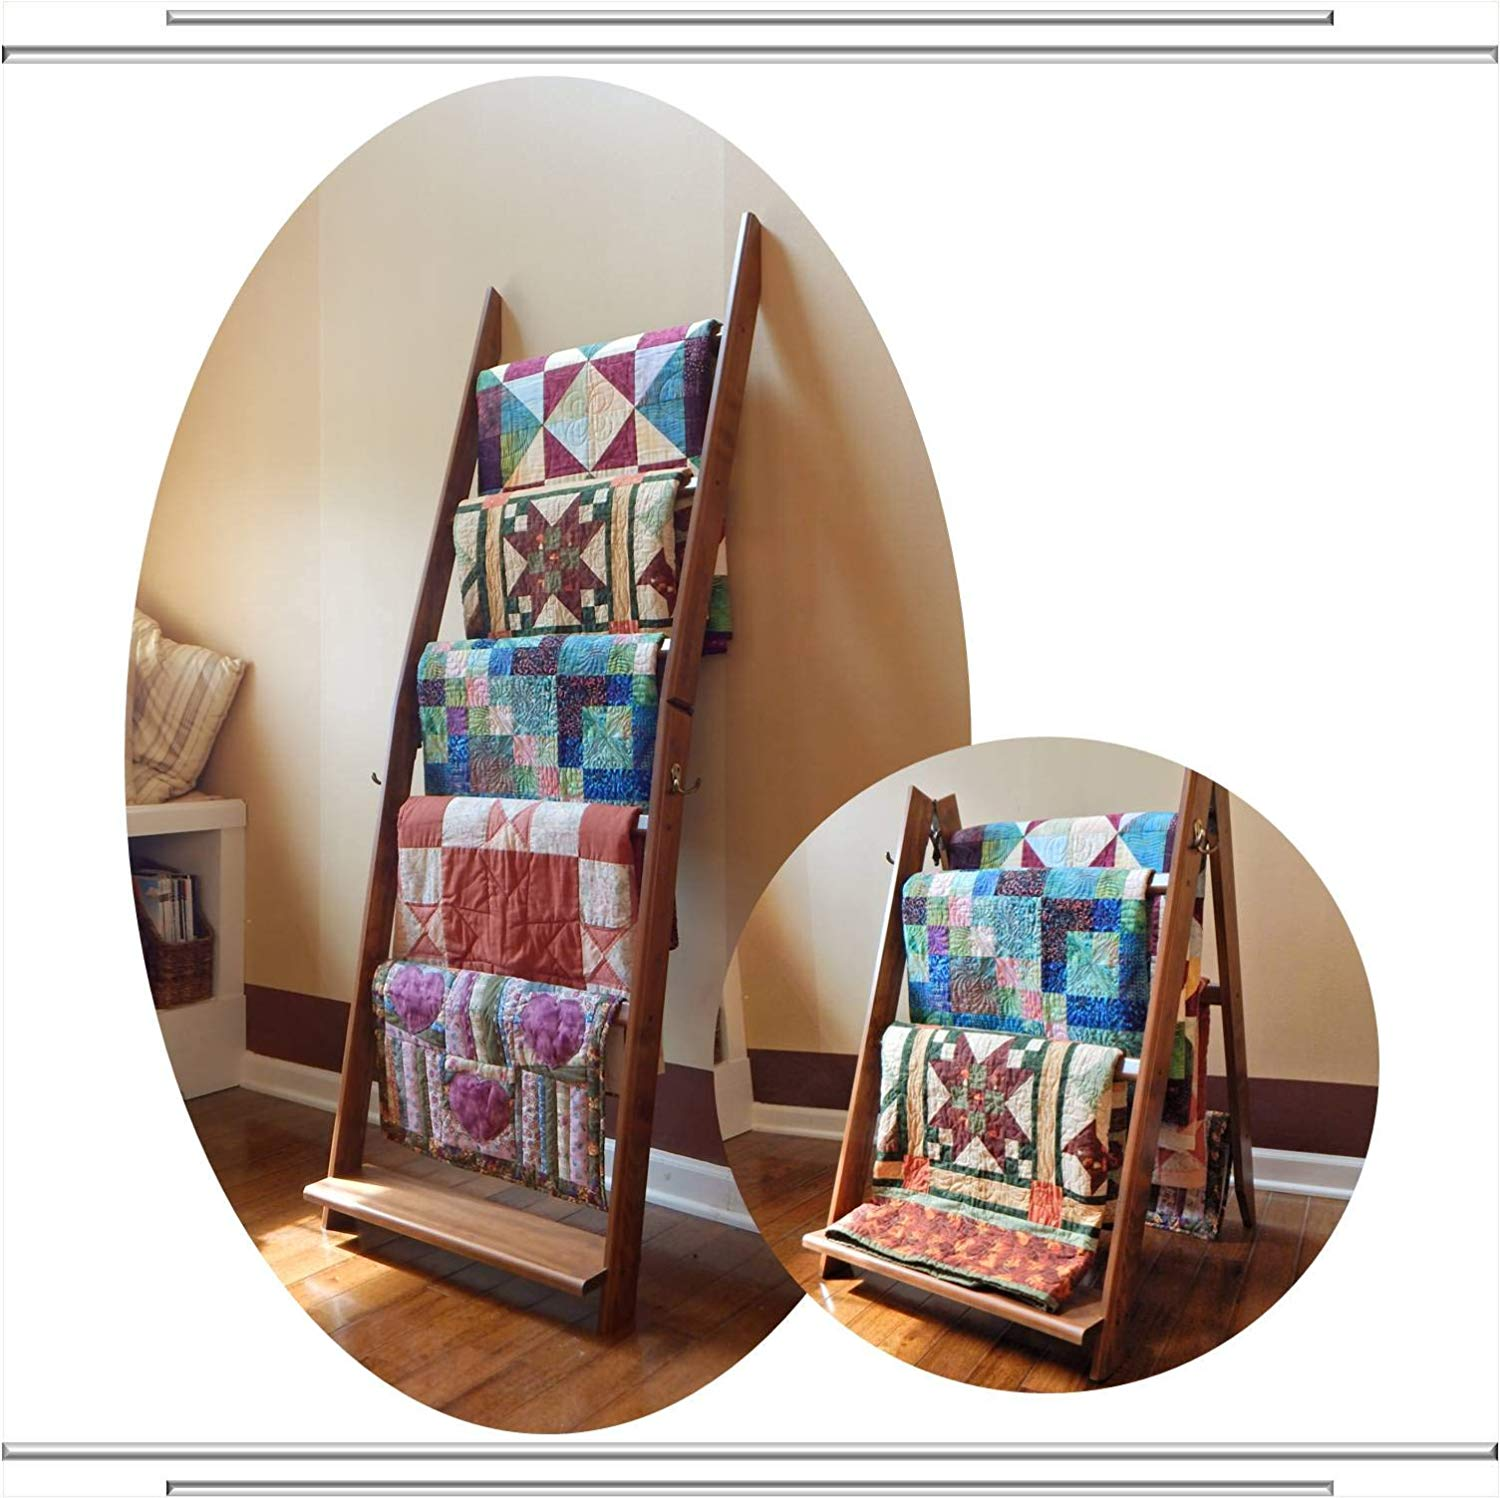 LadderRack 2-in-1 Quilt Display Rack